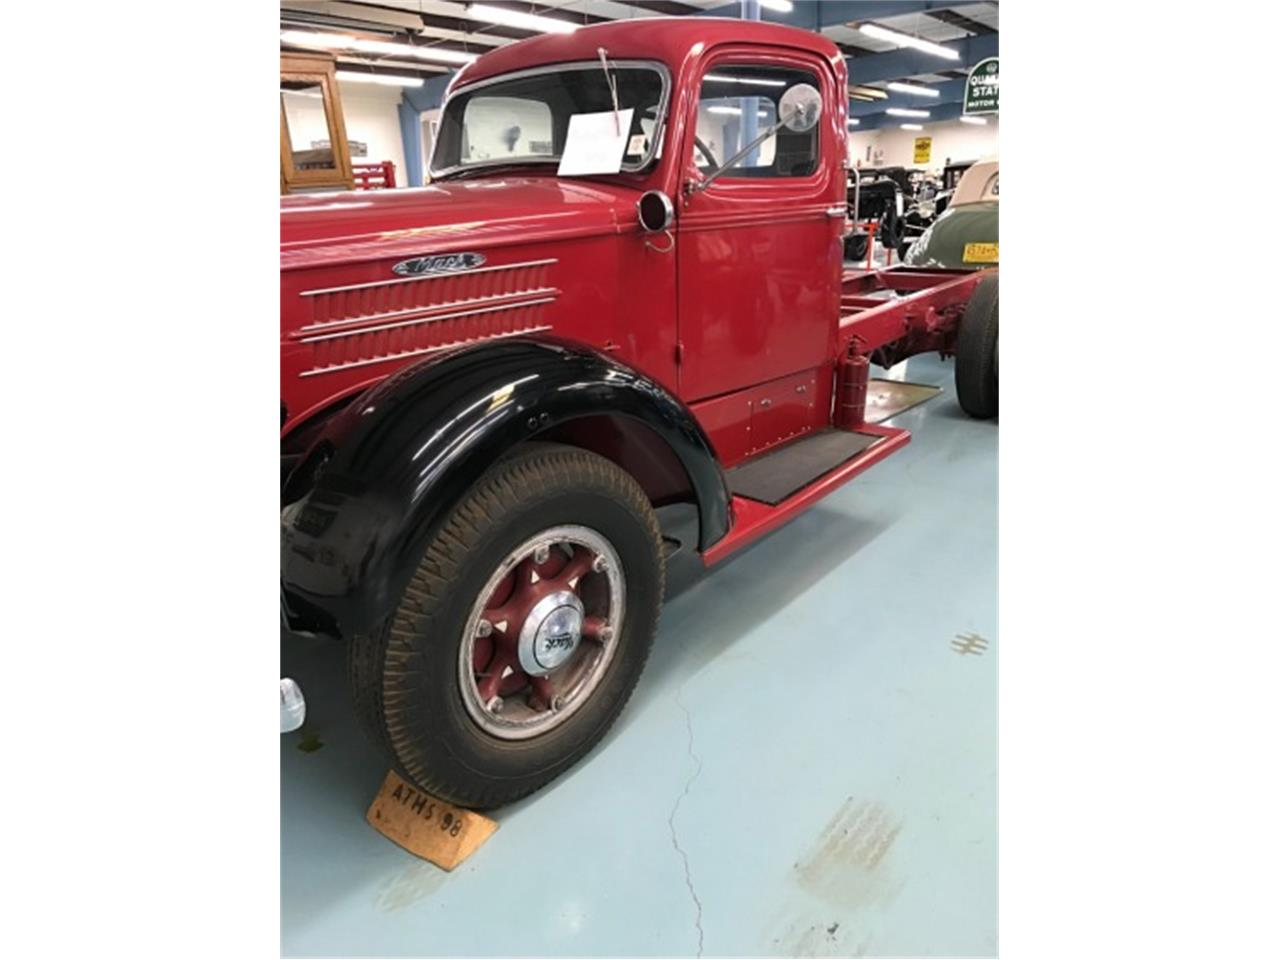 1938 Mack Truck for sale in Peoria, AZ – photo 2